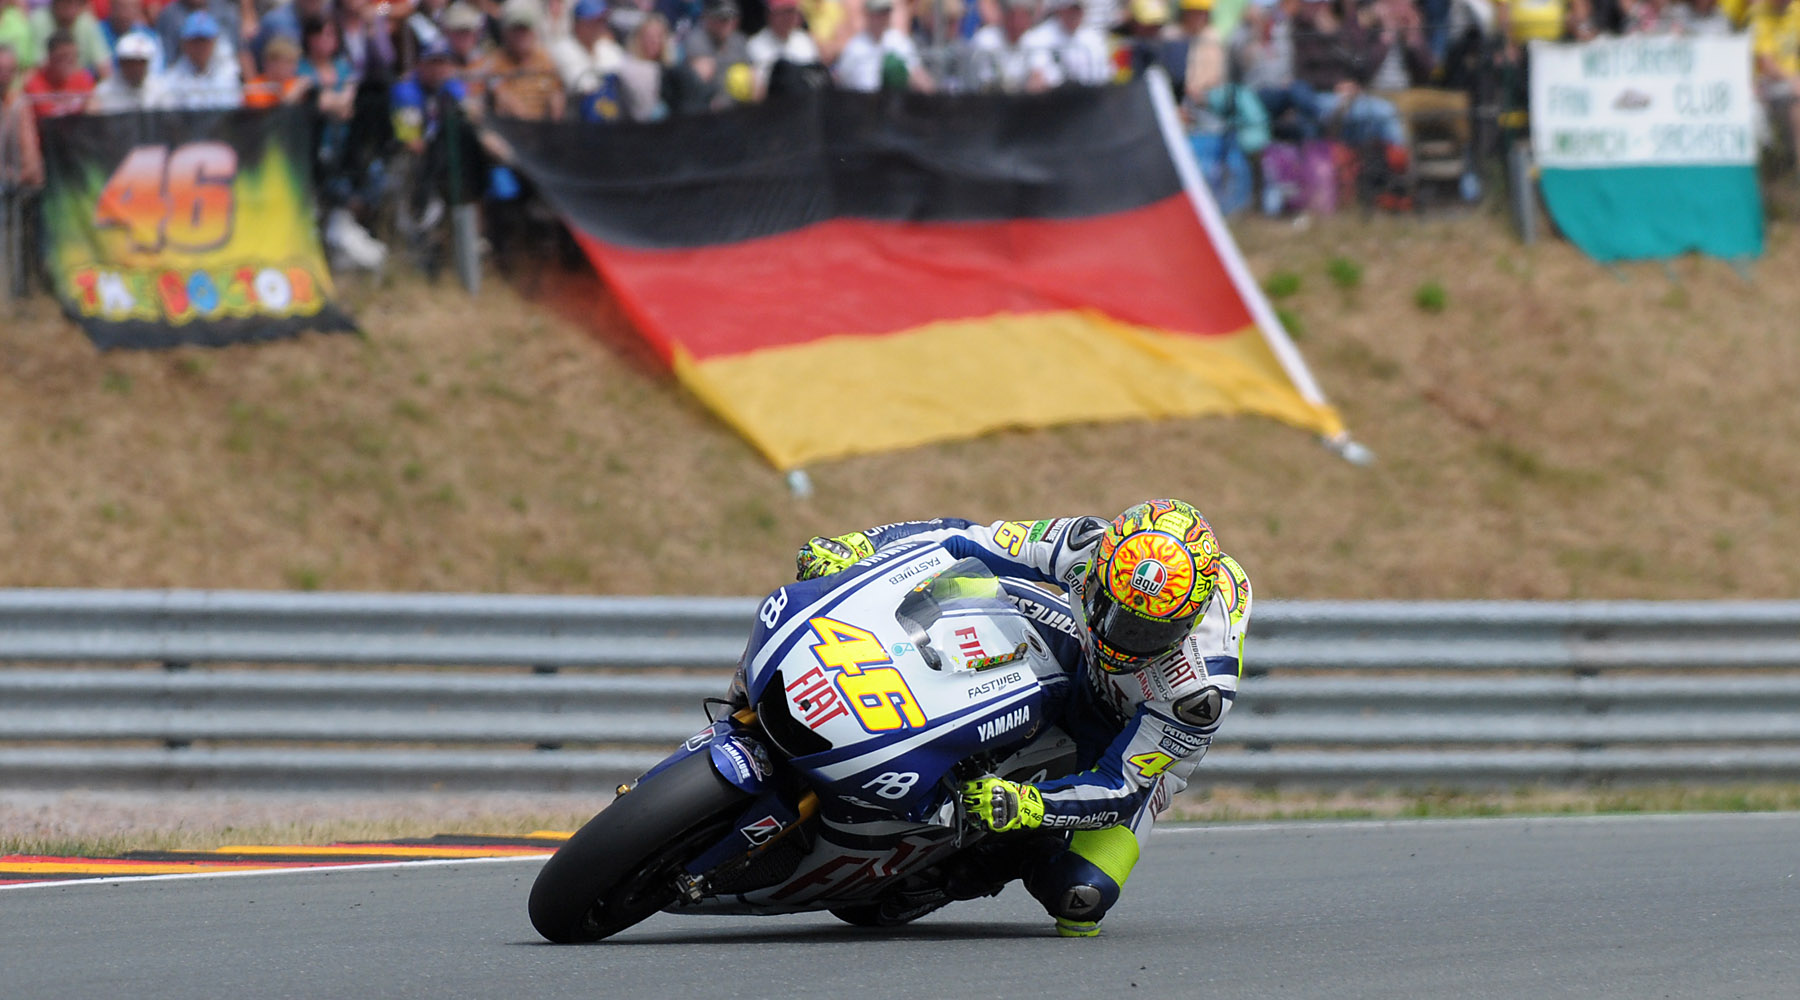 Rossi is back